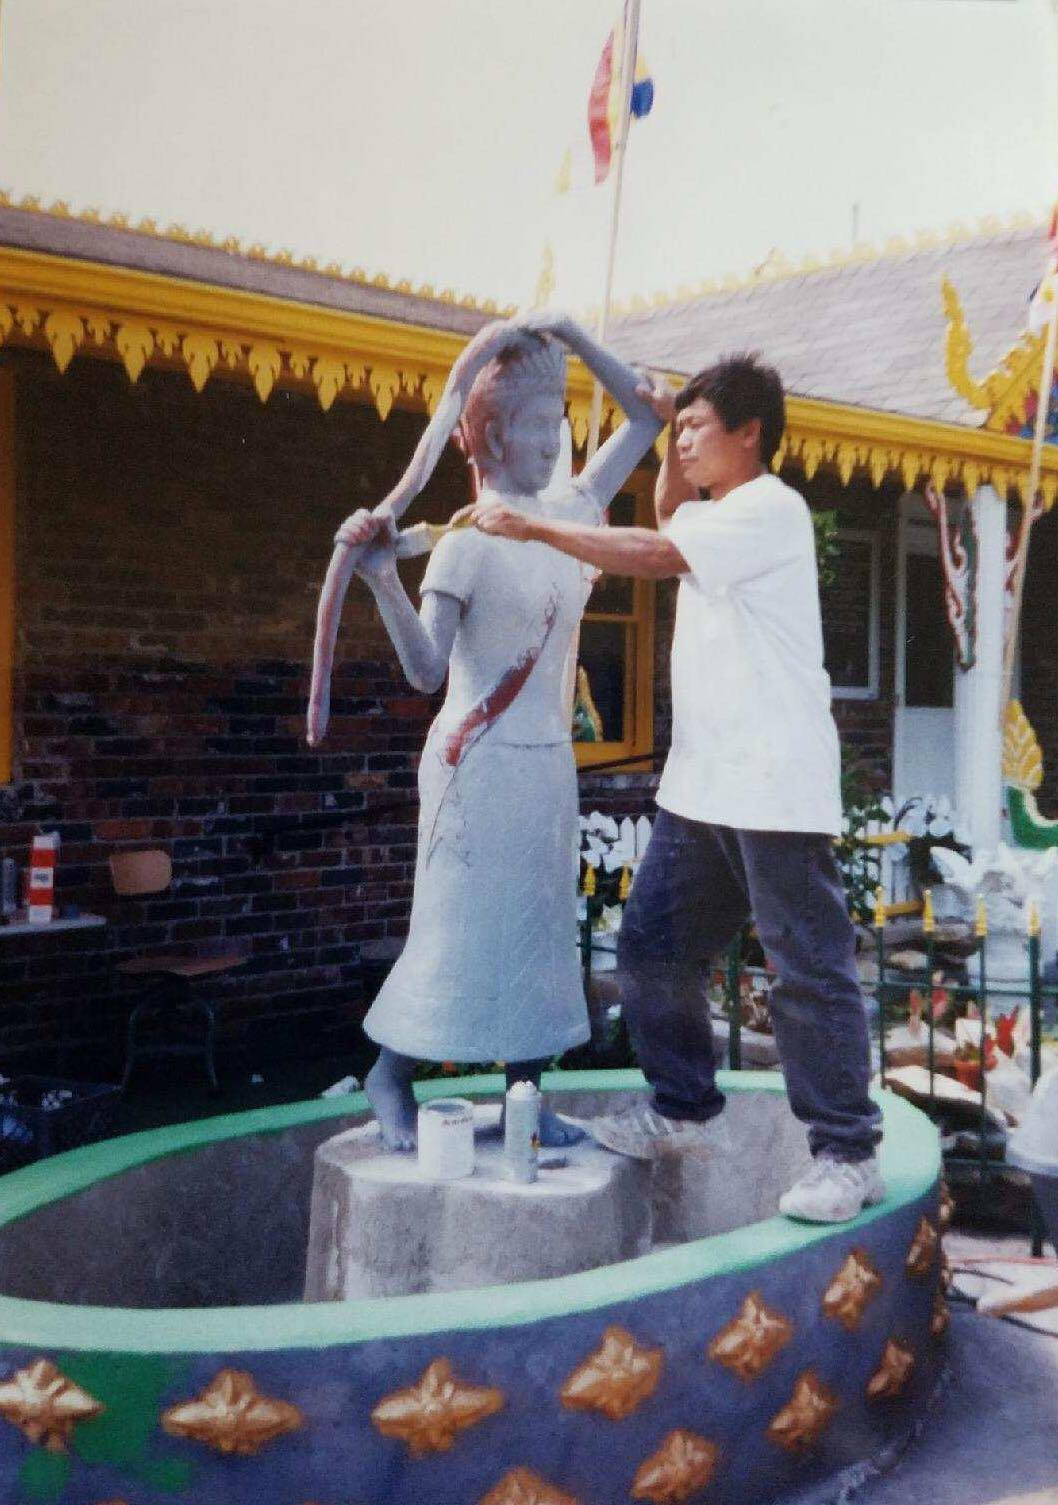 My dad building a buddha sculpture for Wat Lao in Kansas City, MO.